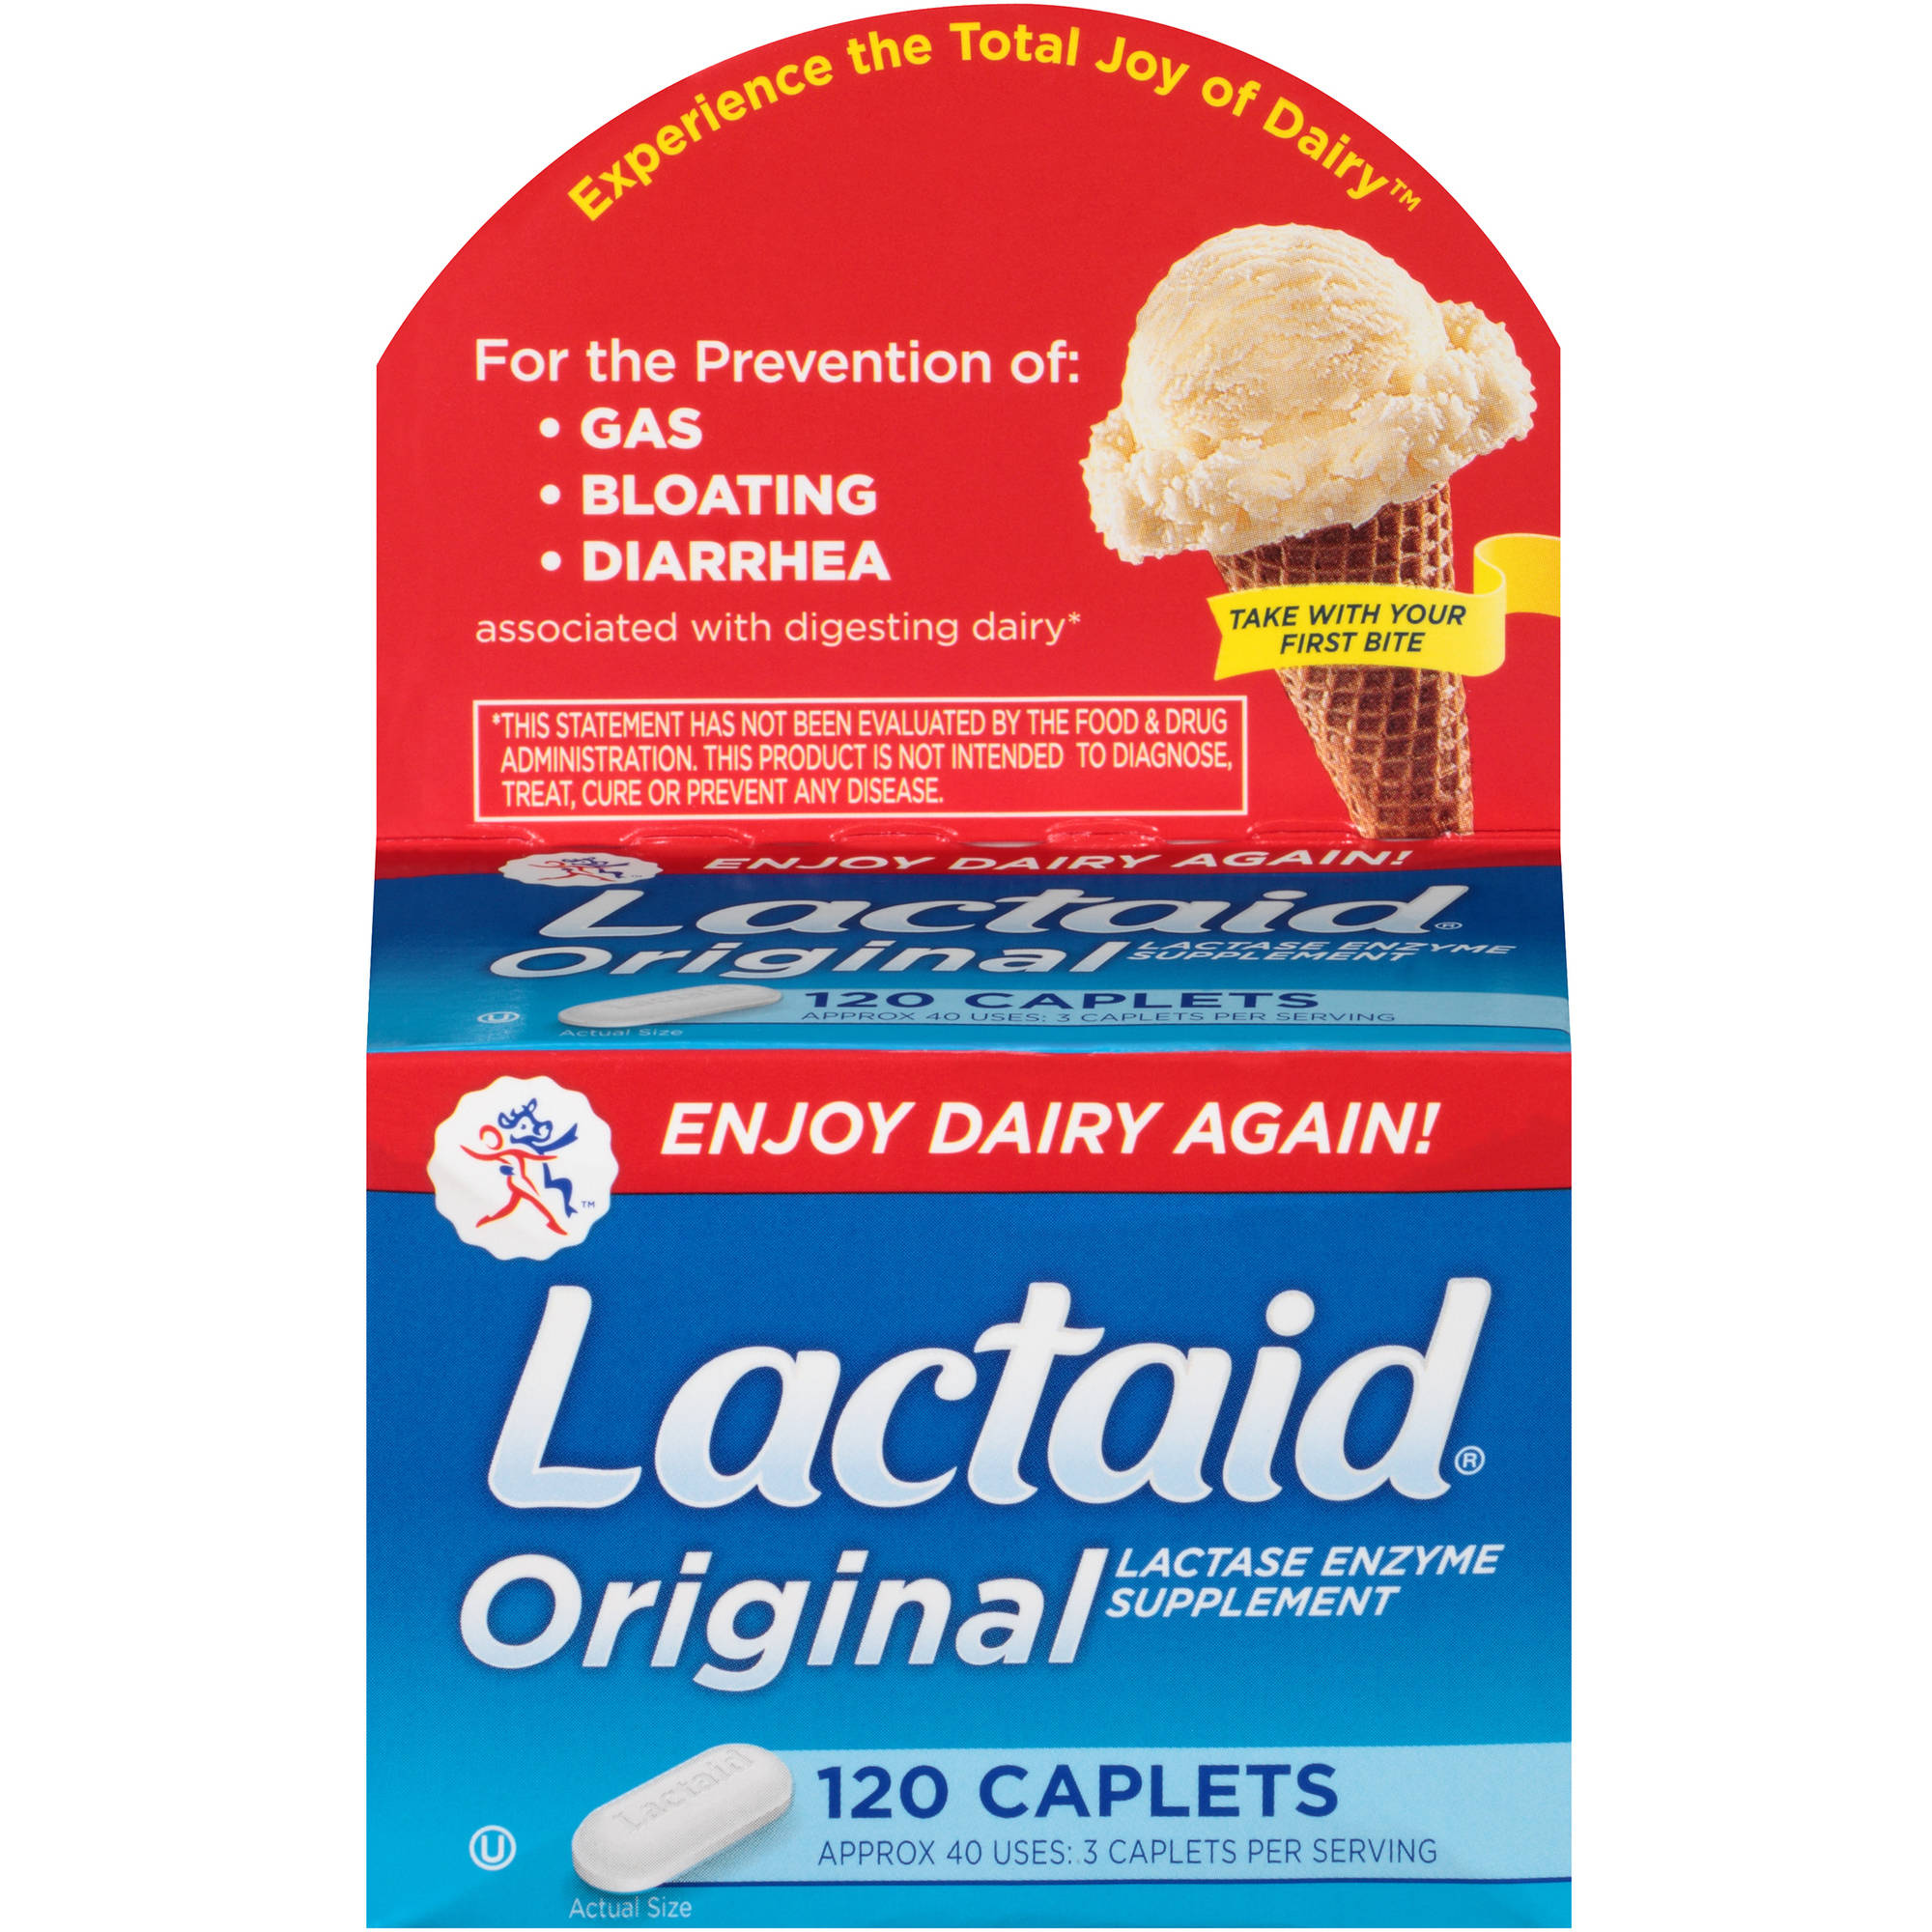 Lactaid Original Lactase Enzyme Supplement Caplets, 120 count